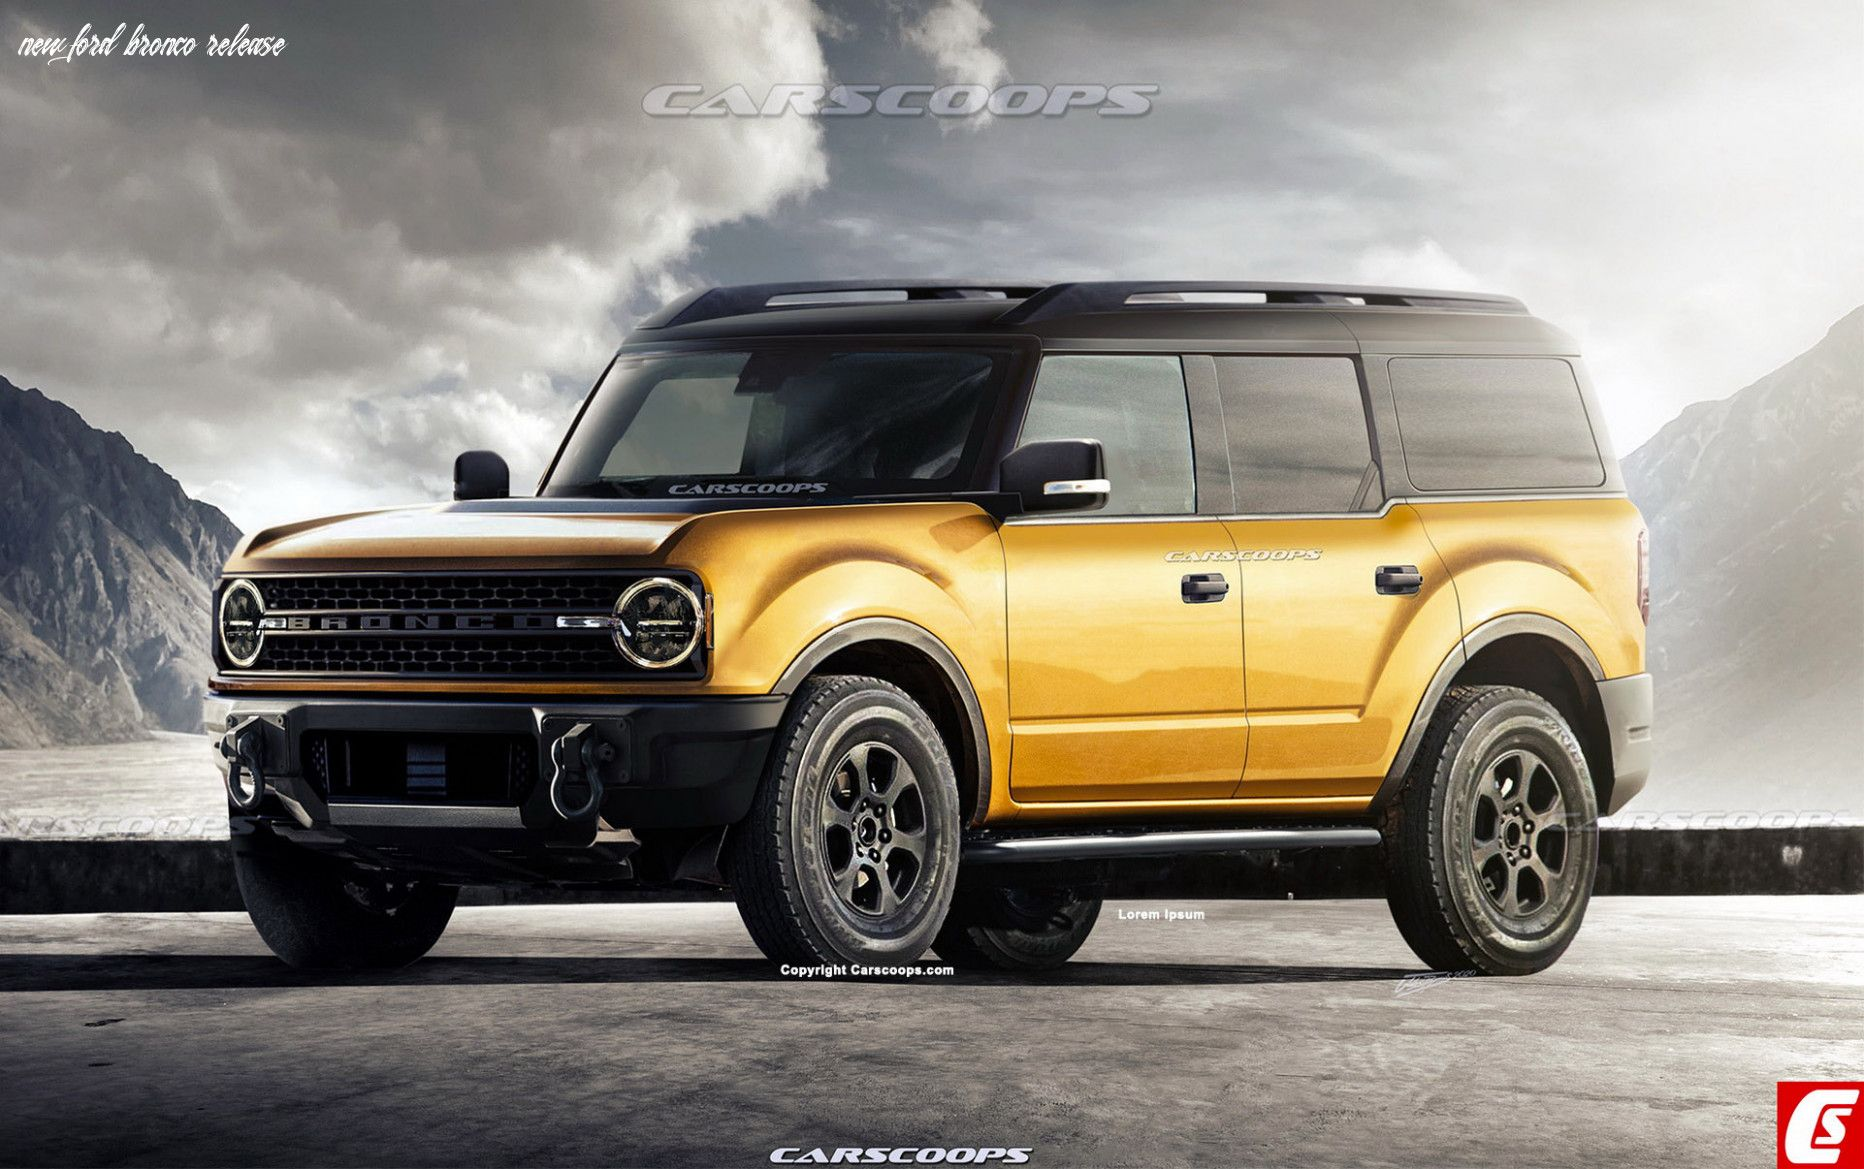 New Ford Bronco Release in 2020 Ford bronco, Classic